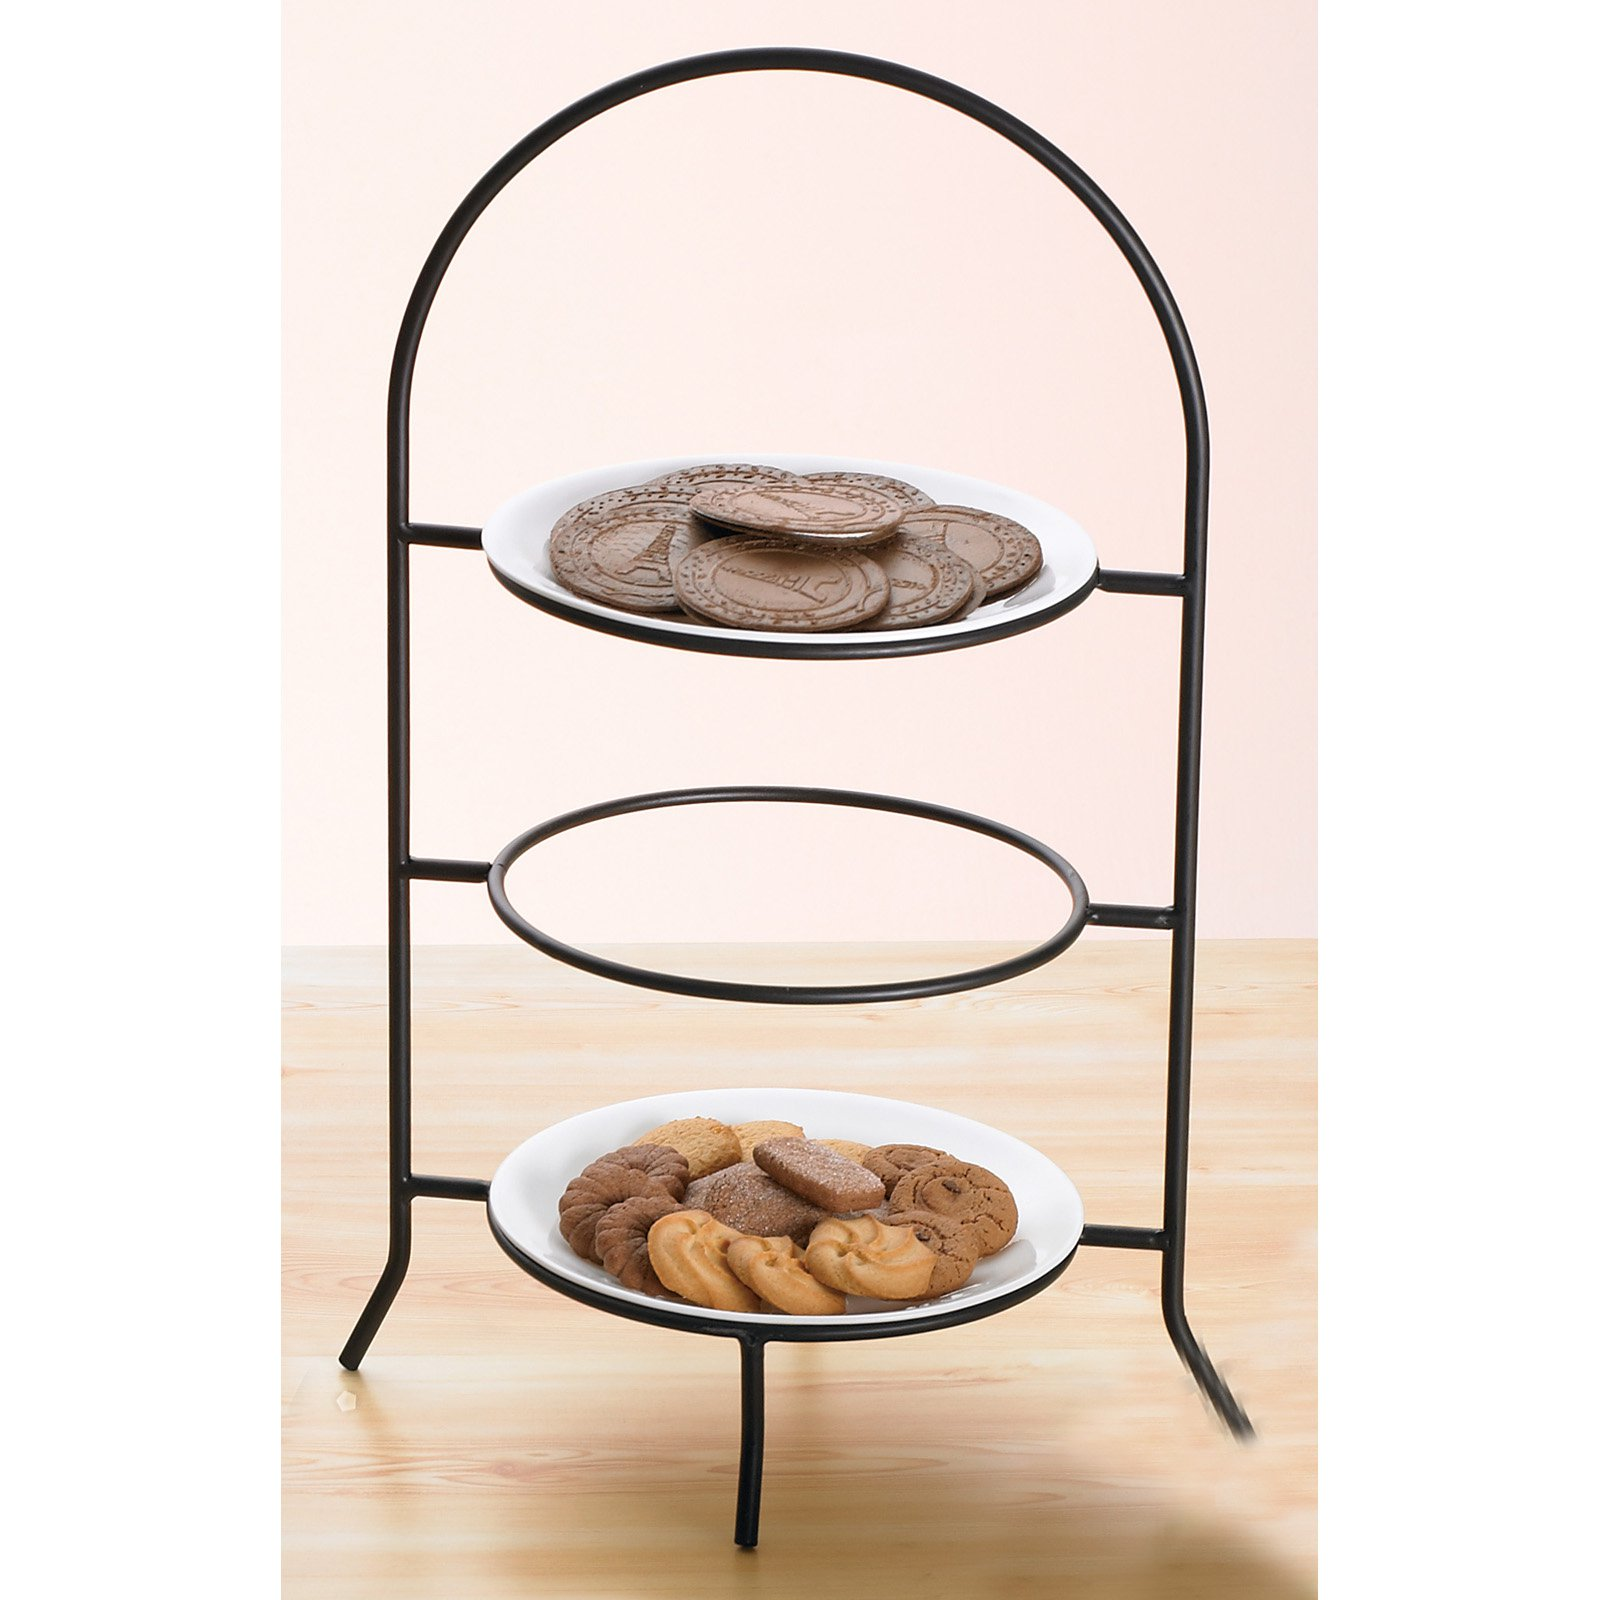 Creative Home Iron Works 3 Tier Dinner Plate Rack  sc 1 st  Walmart & Creative Home Iron Works 3 Tier Dinner Plate Rack - Walmart.com